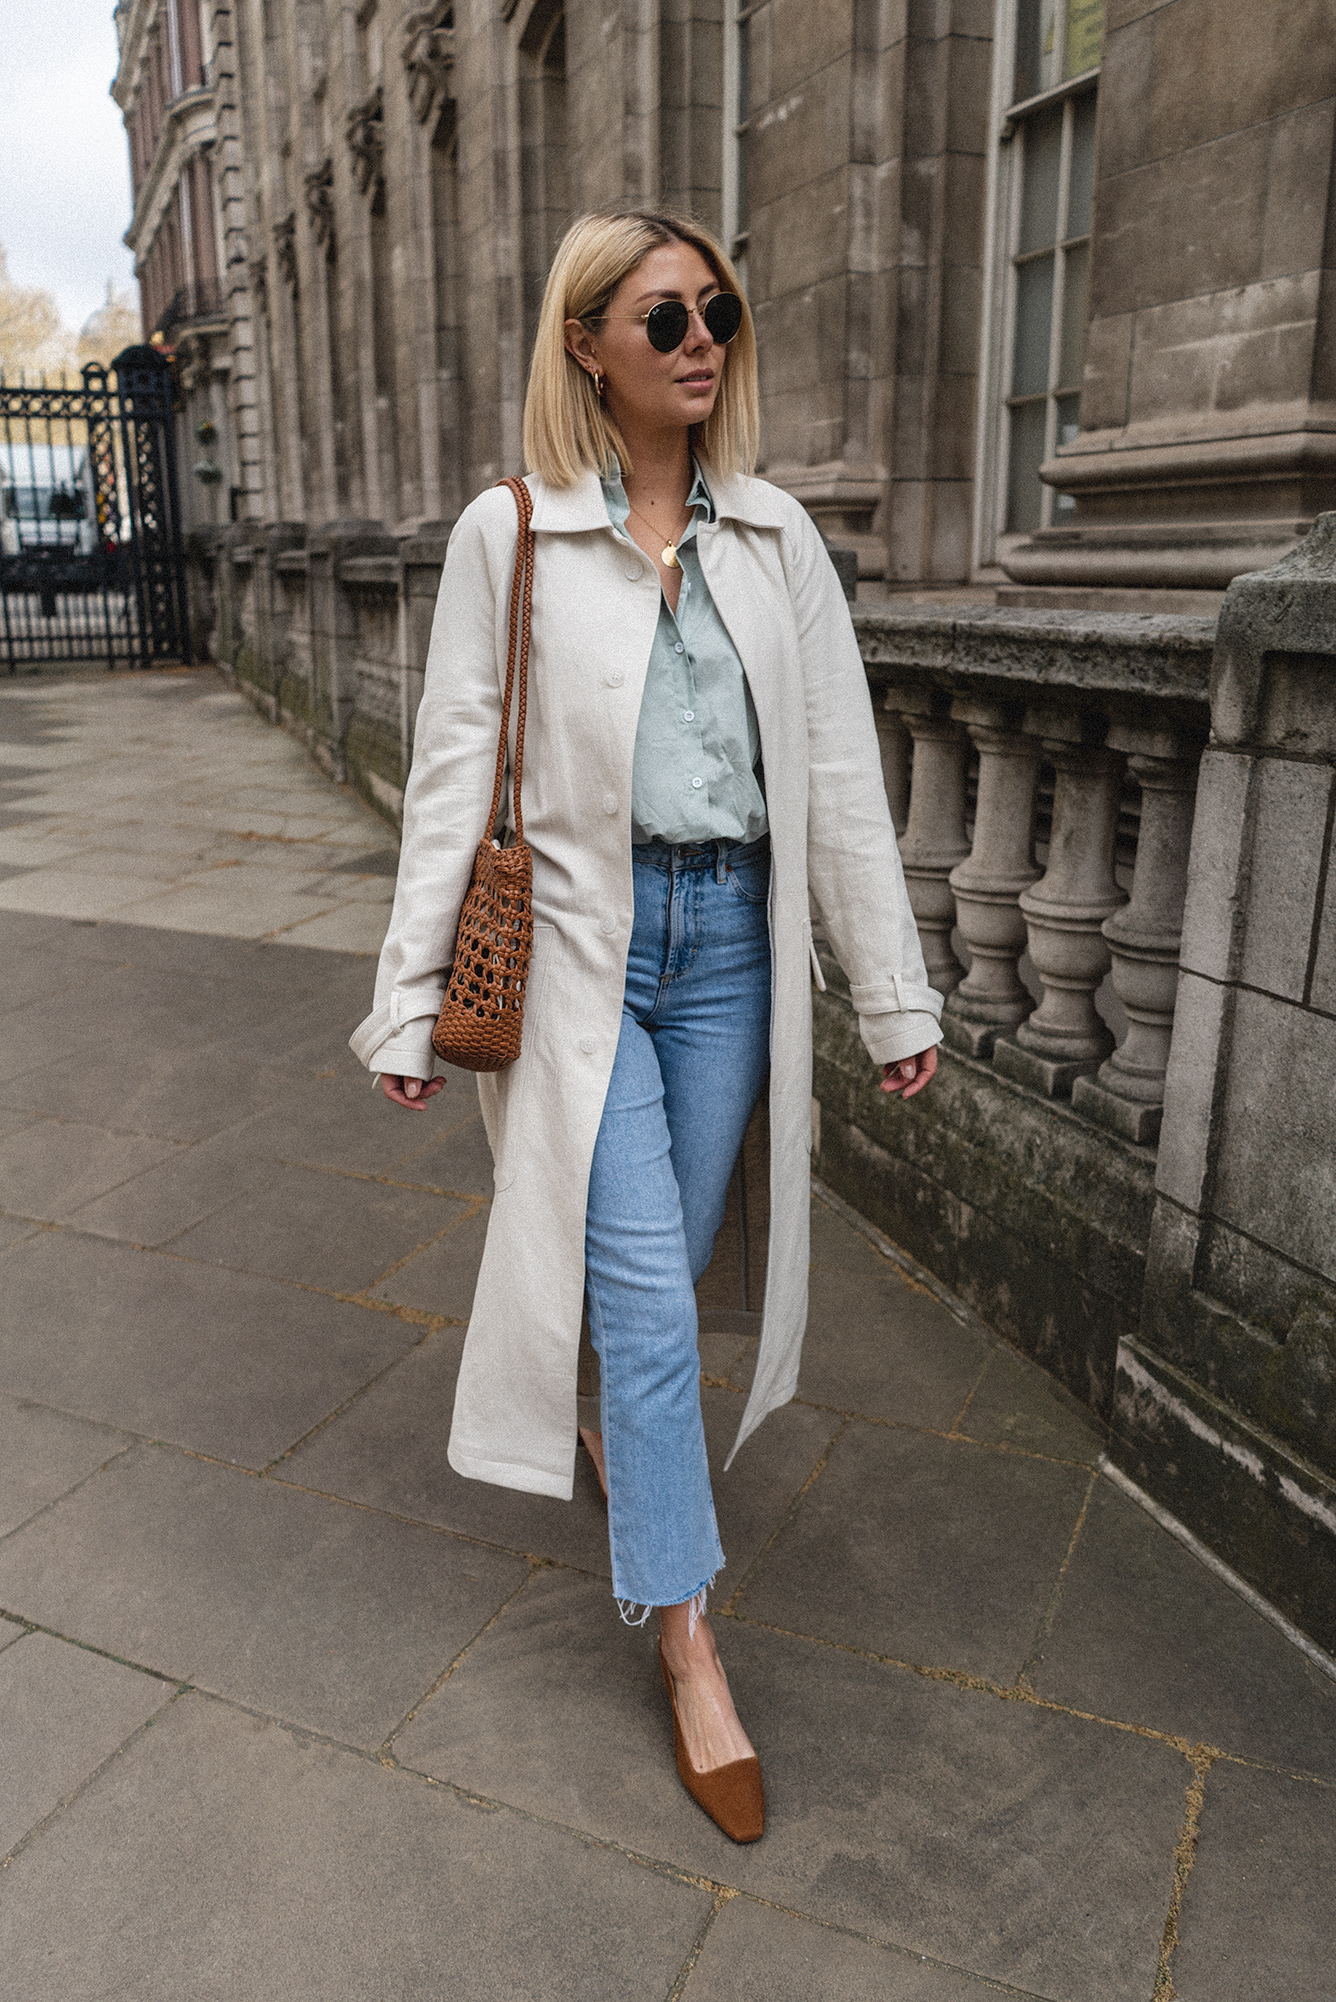 Emma Hill style, off white duster trench coat, wint green shirt, light wash jeans, tan leather woven bag, gold mini marie necklace, Tan suede slingback shoes, Spring outfit